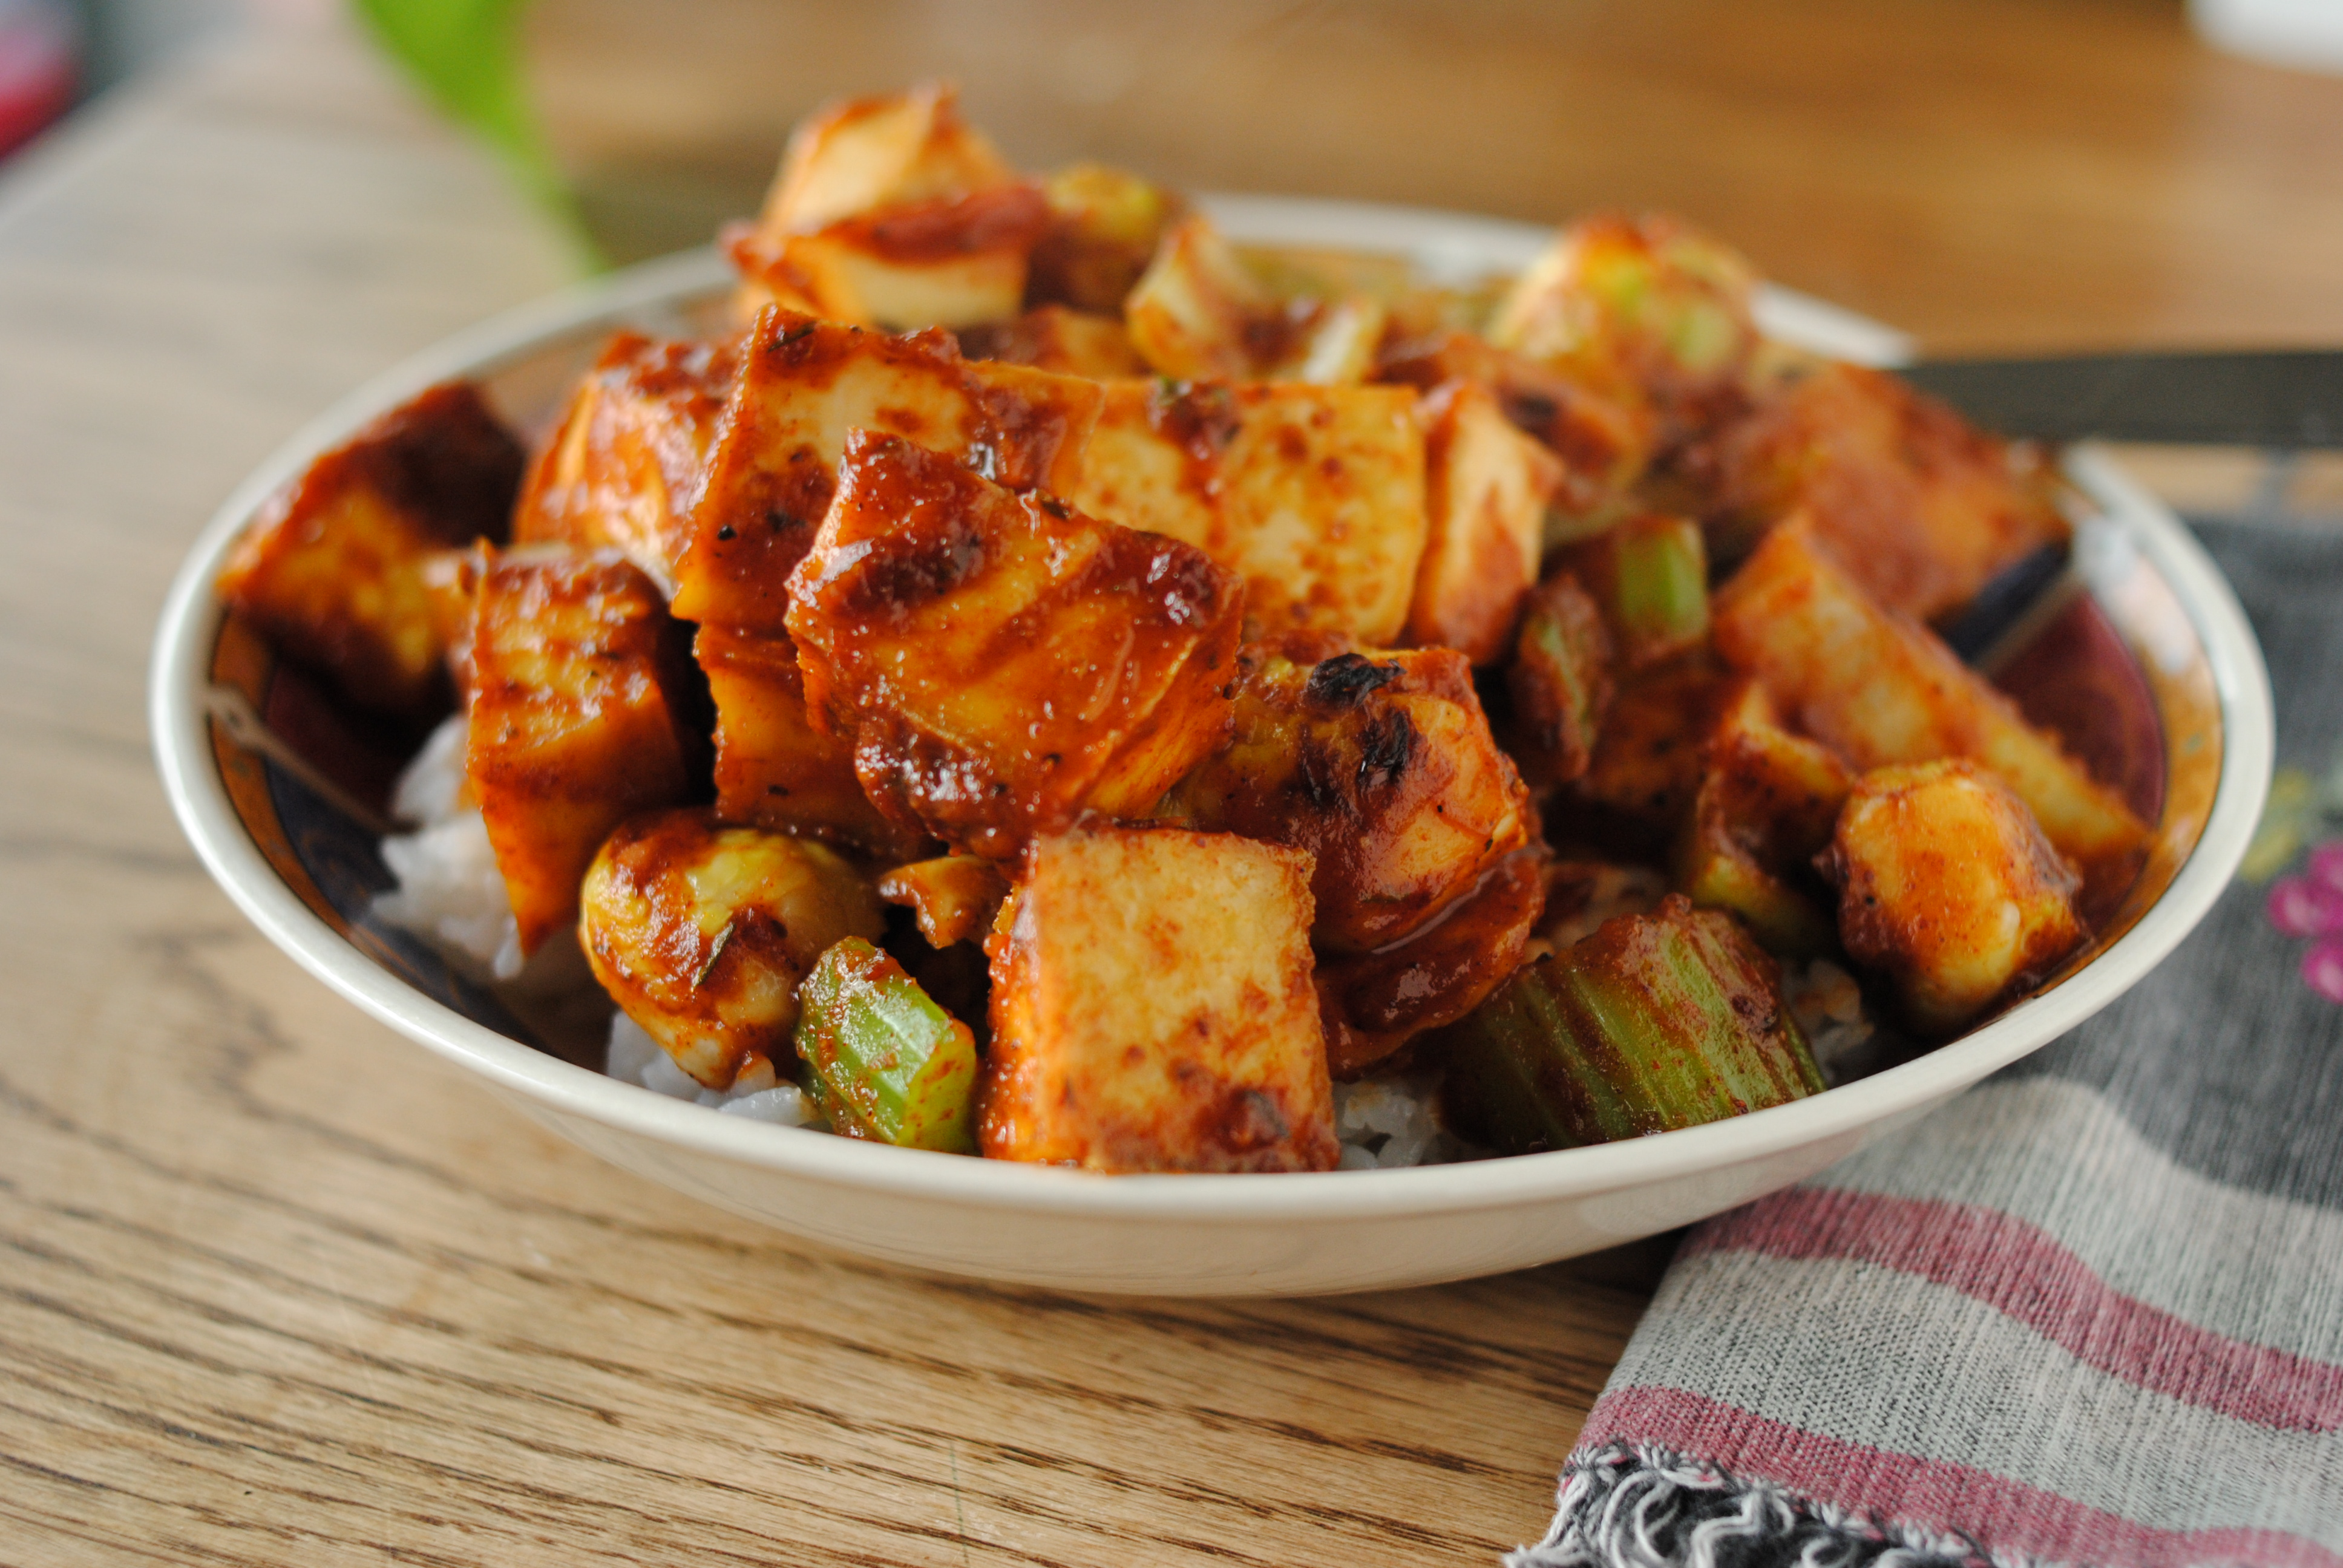 ... tofu bites. Tossed together till everything was cooked and warm, and